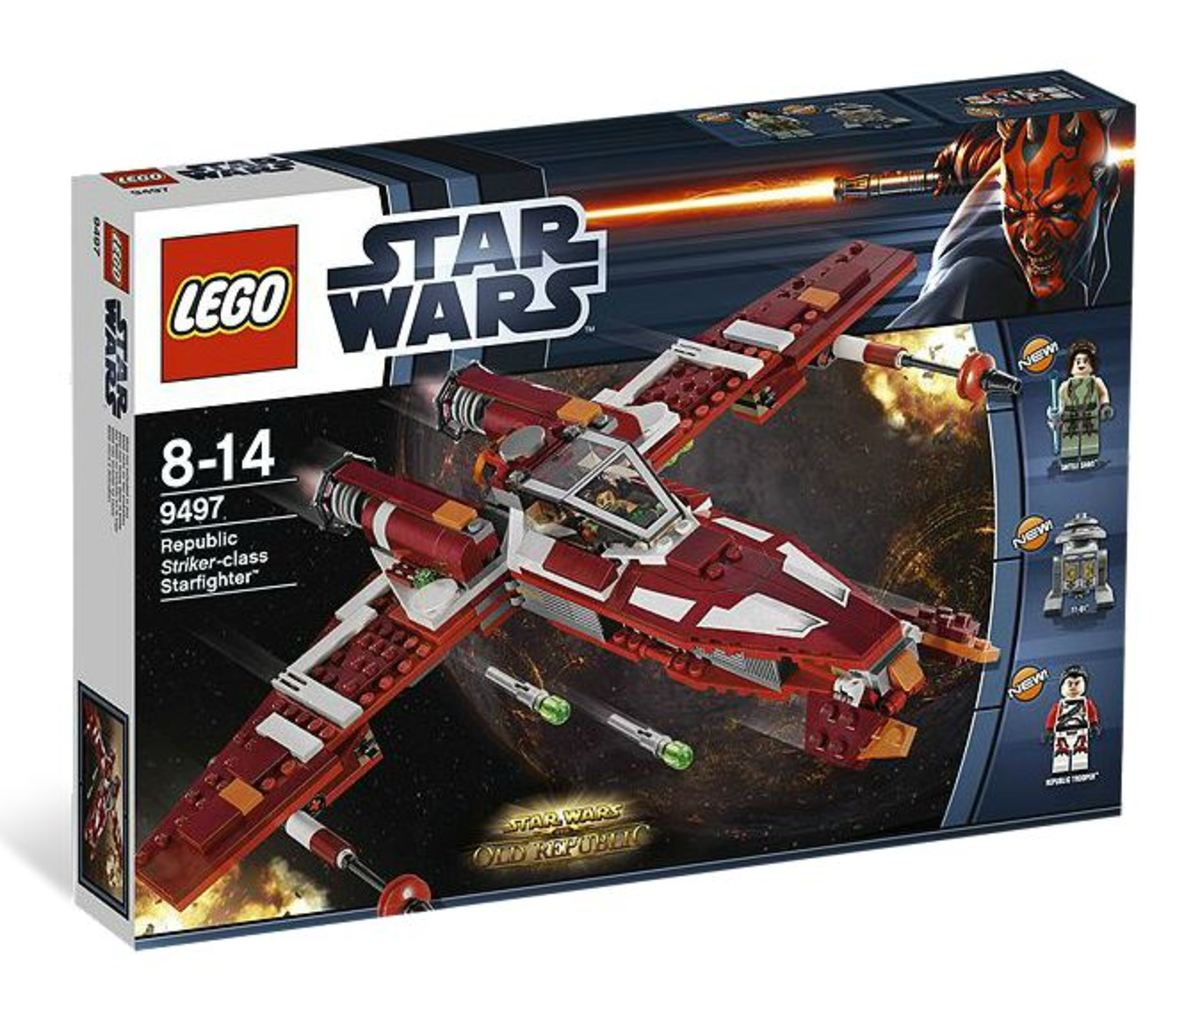 LEGO Star Wars Republic Striker Starfighter 9497 Box